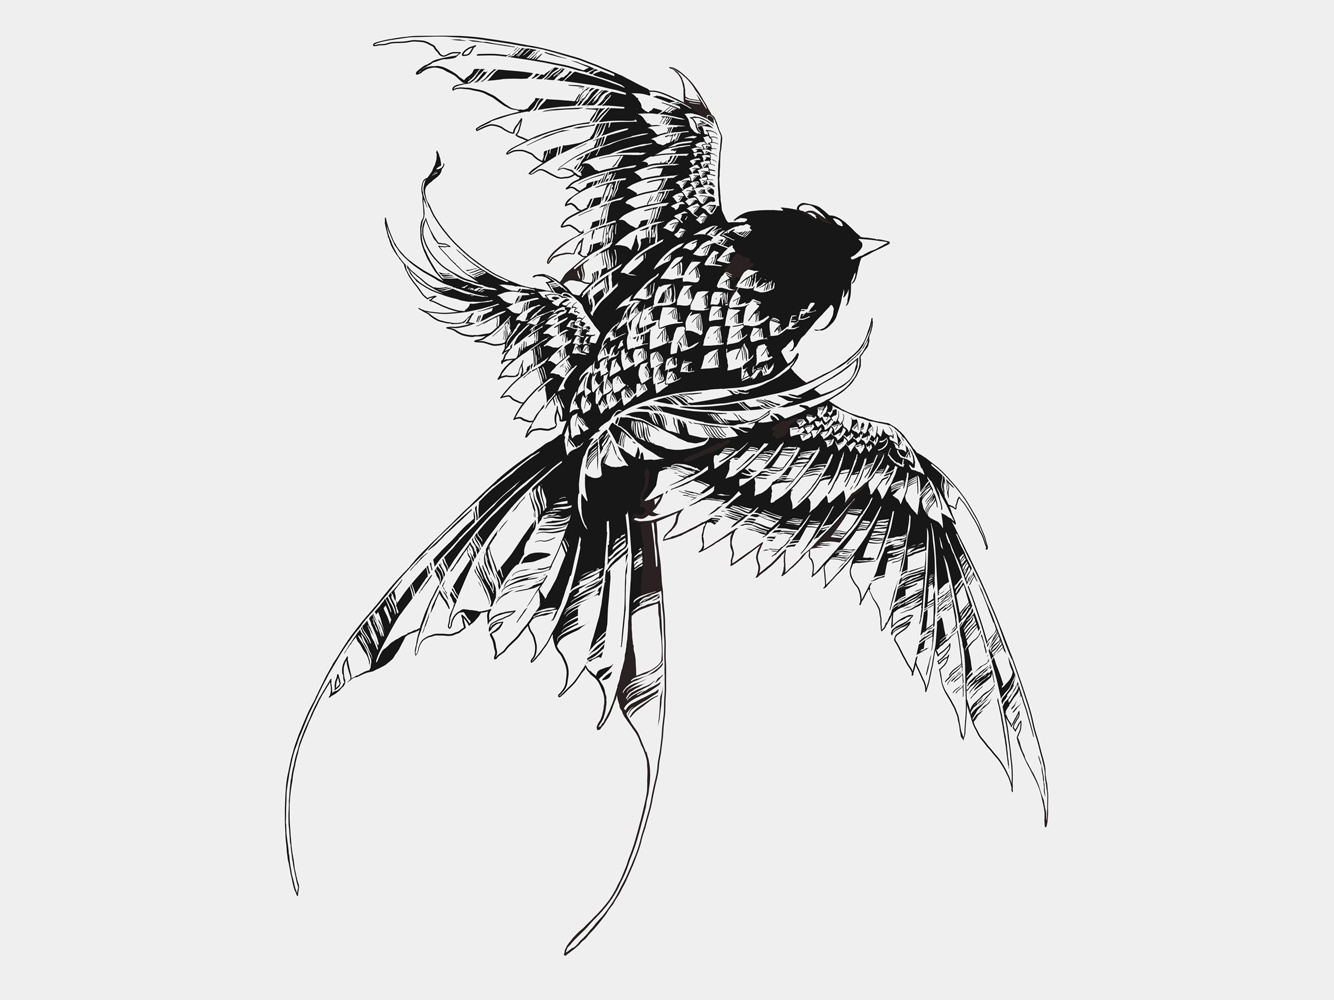 Swallow procreate ipadpro digital ink digital art swallow bird feathers graphic further up ivan belikov illustration